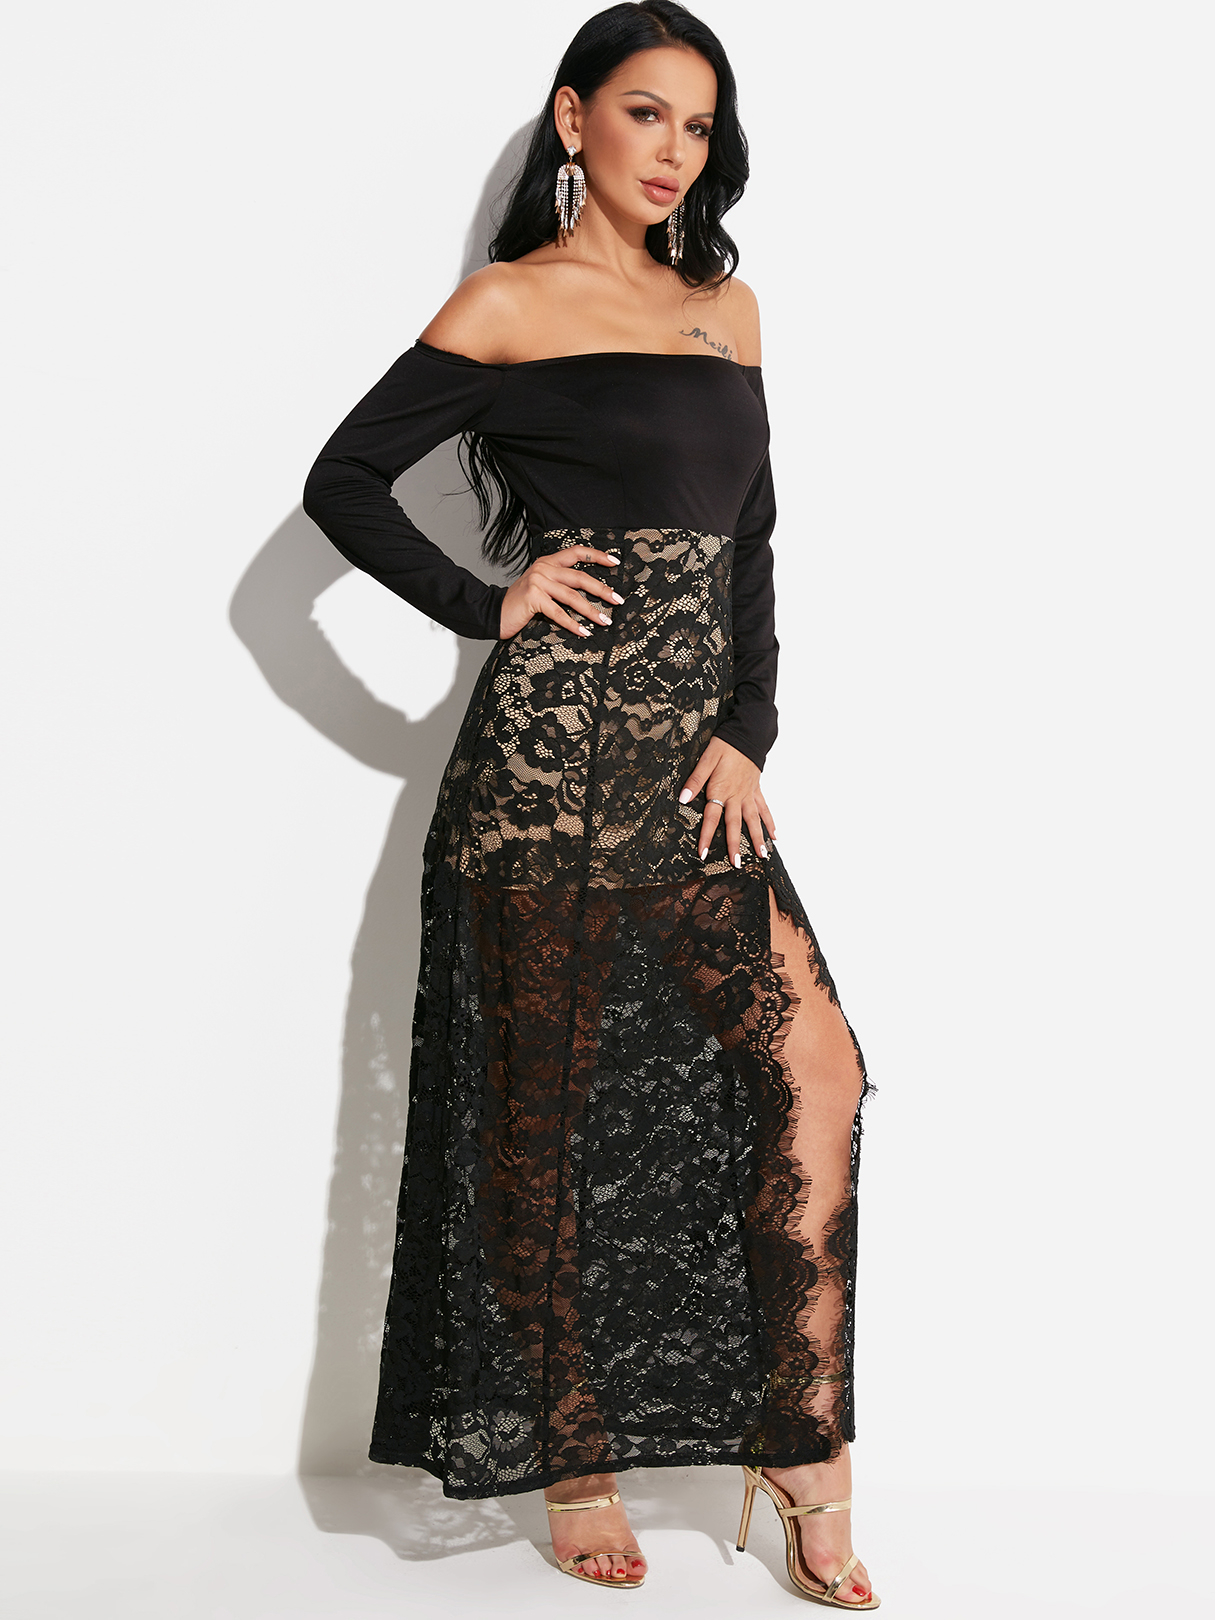 Black Stitching Design Off The Shoulder Long Sleeves Maix Lace Dress